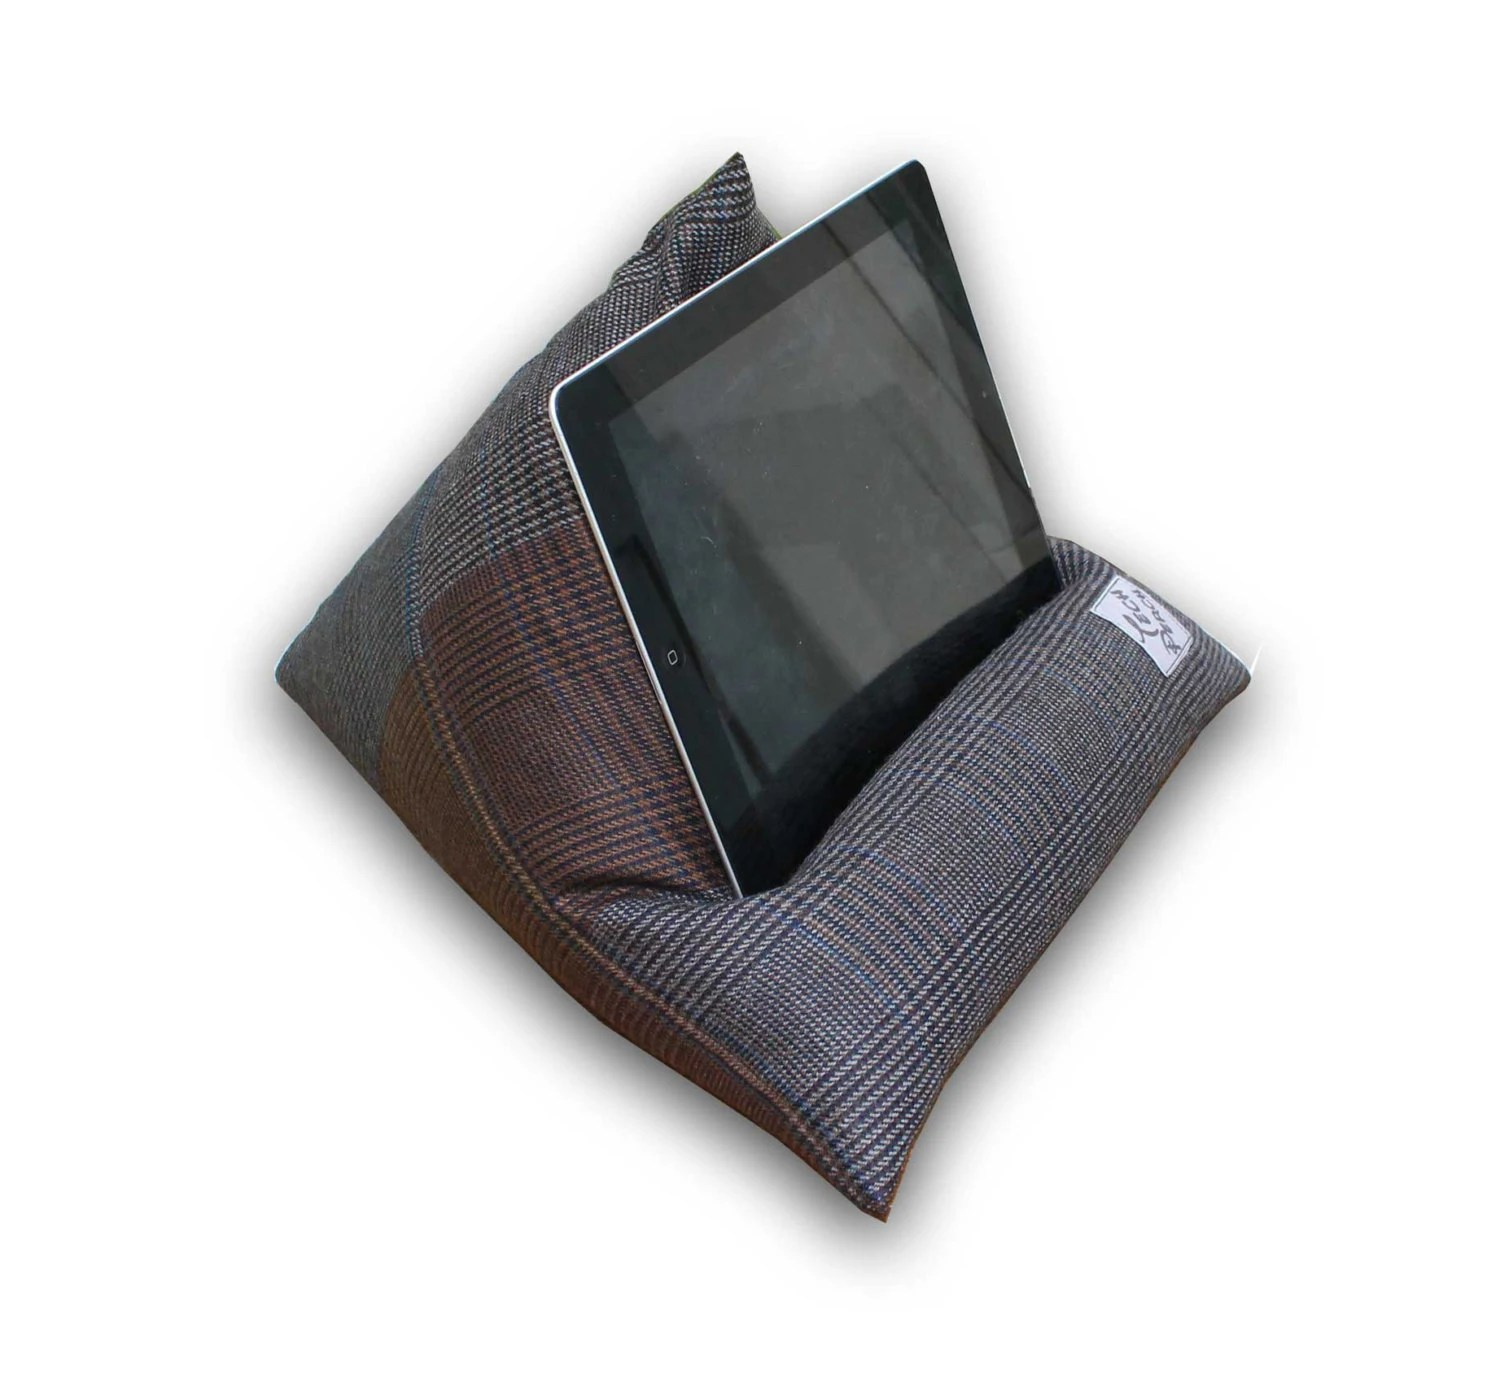 Ipad Pro Stand Tablet Pillow Pure English Wool Kindle Cushion